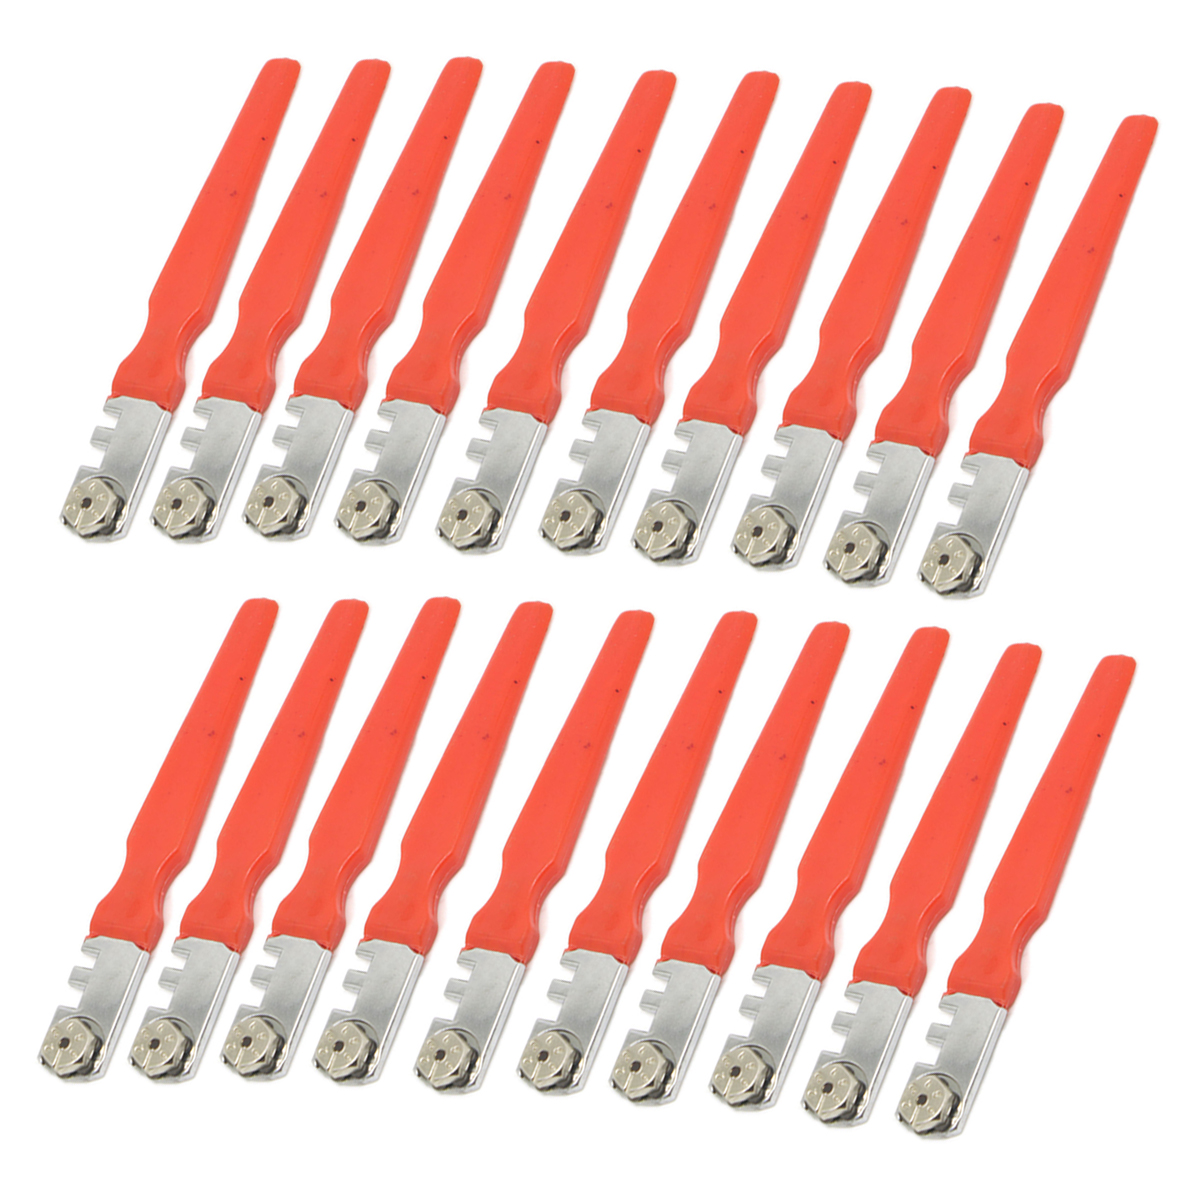 20pcs/set New 3mm-18mm Tipped Tile Glass Cutters Cutting Craft Glazing Hand Tools